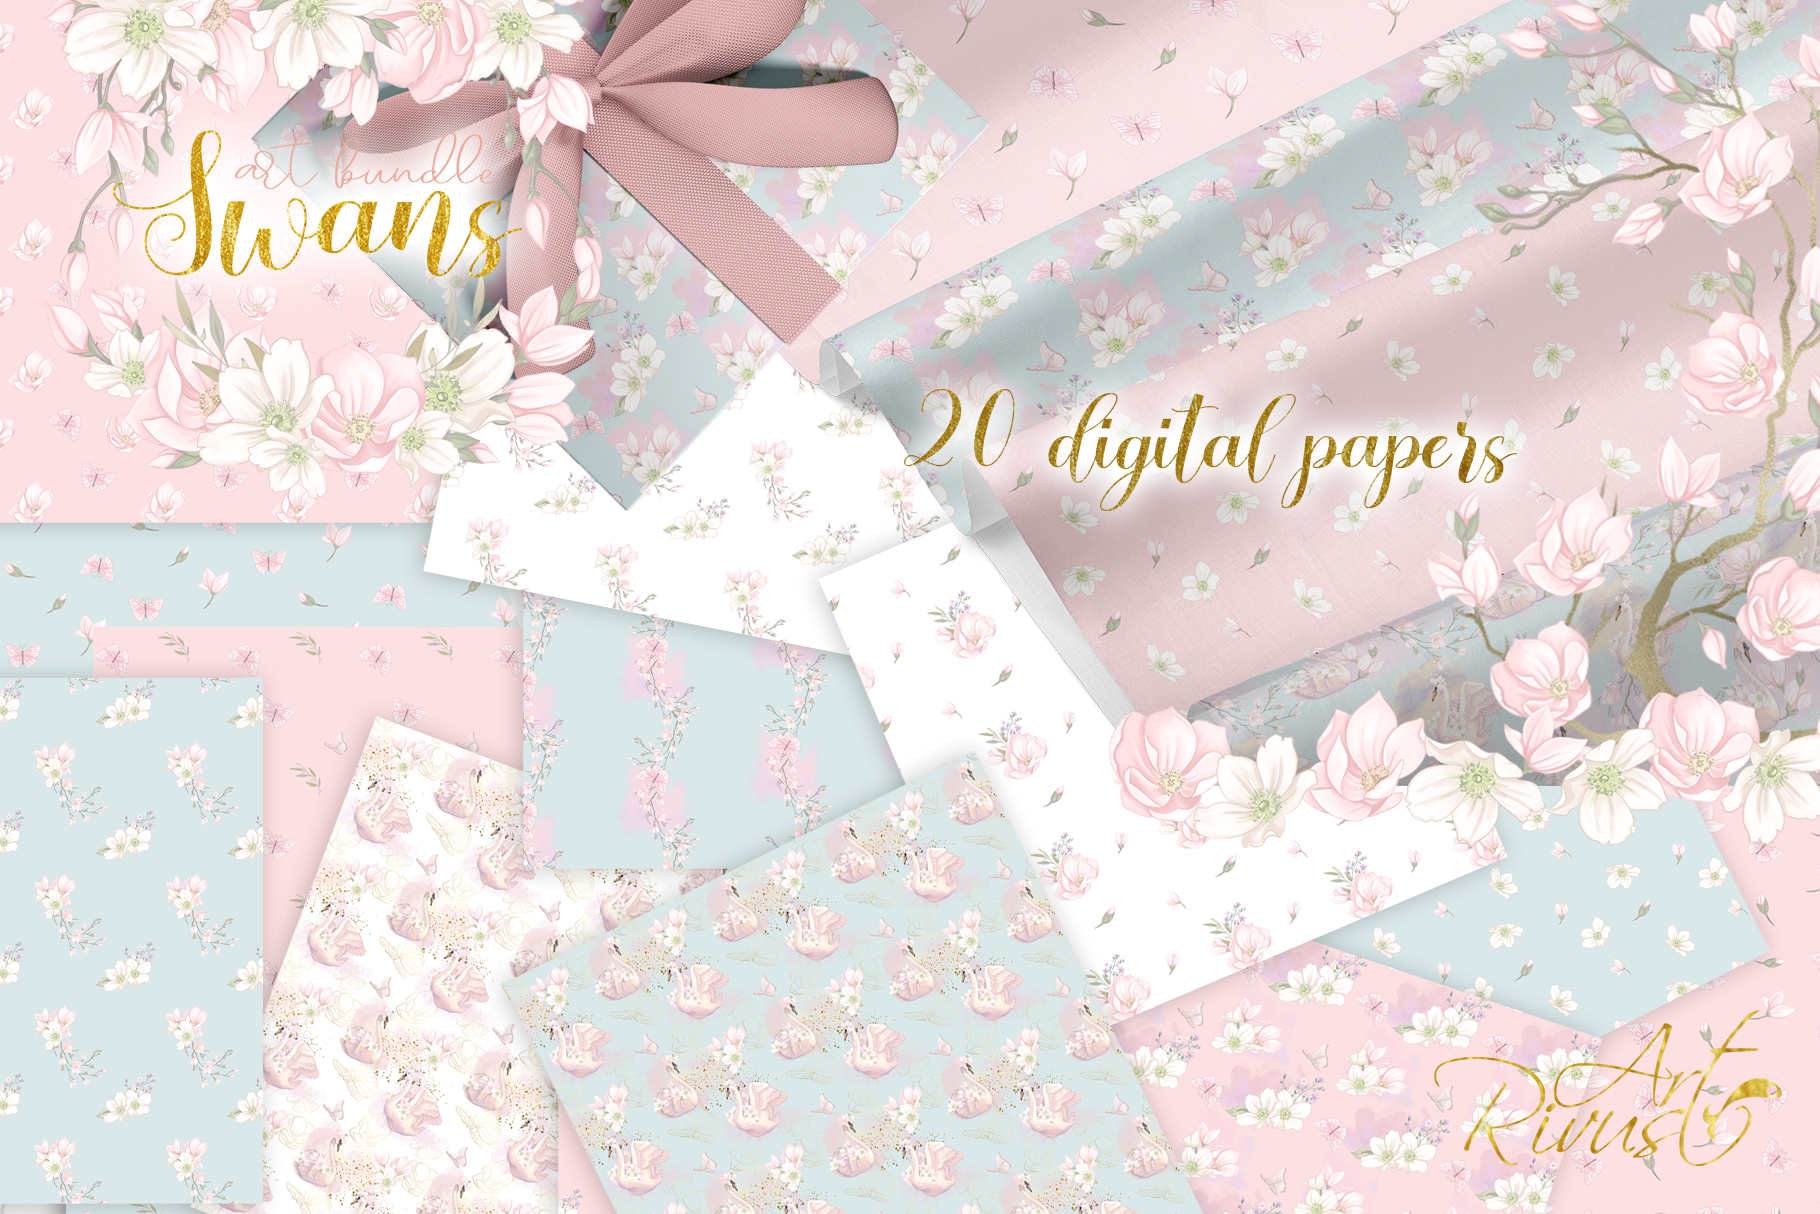 Swans clipart bundle. Wedding and baby shower graphic pack. example image 10